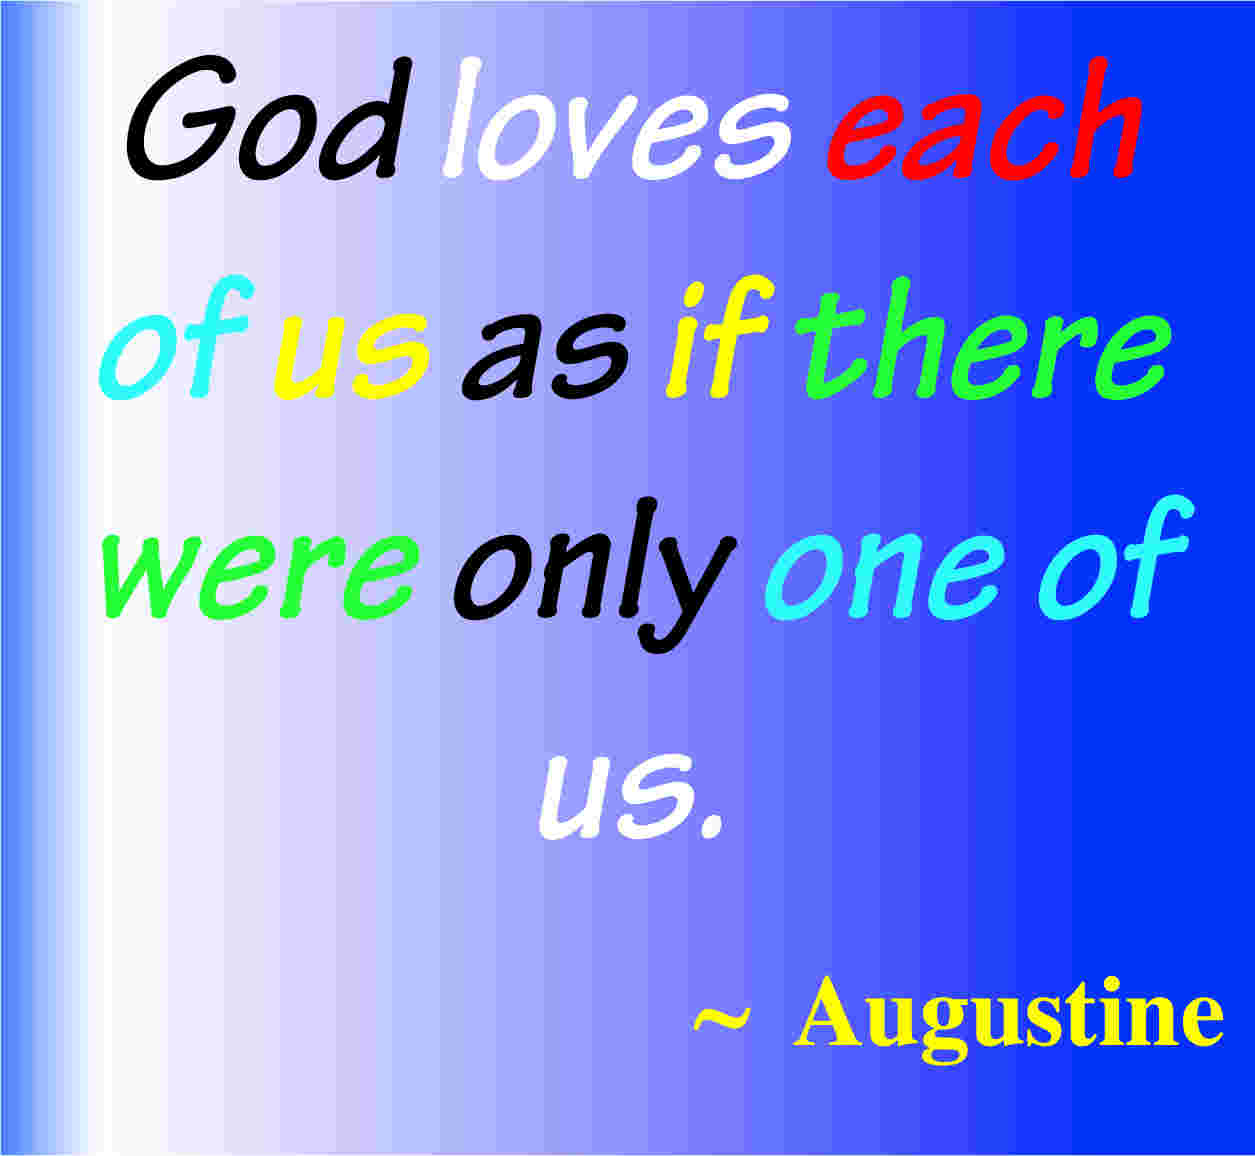 Inspirational Quotes About Loving Children 20 Inspirational Bible Verses About God's Love